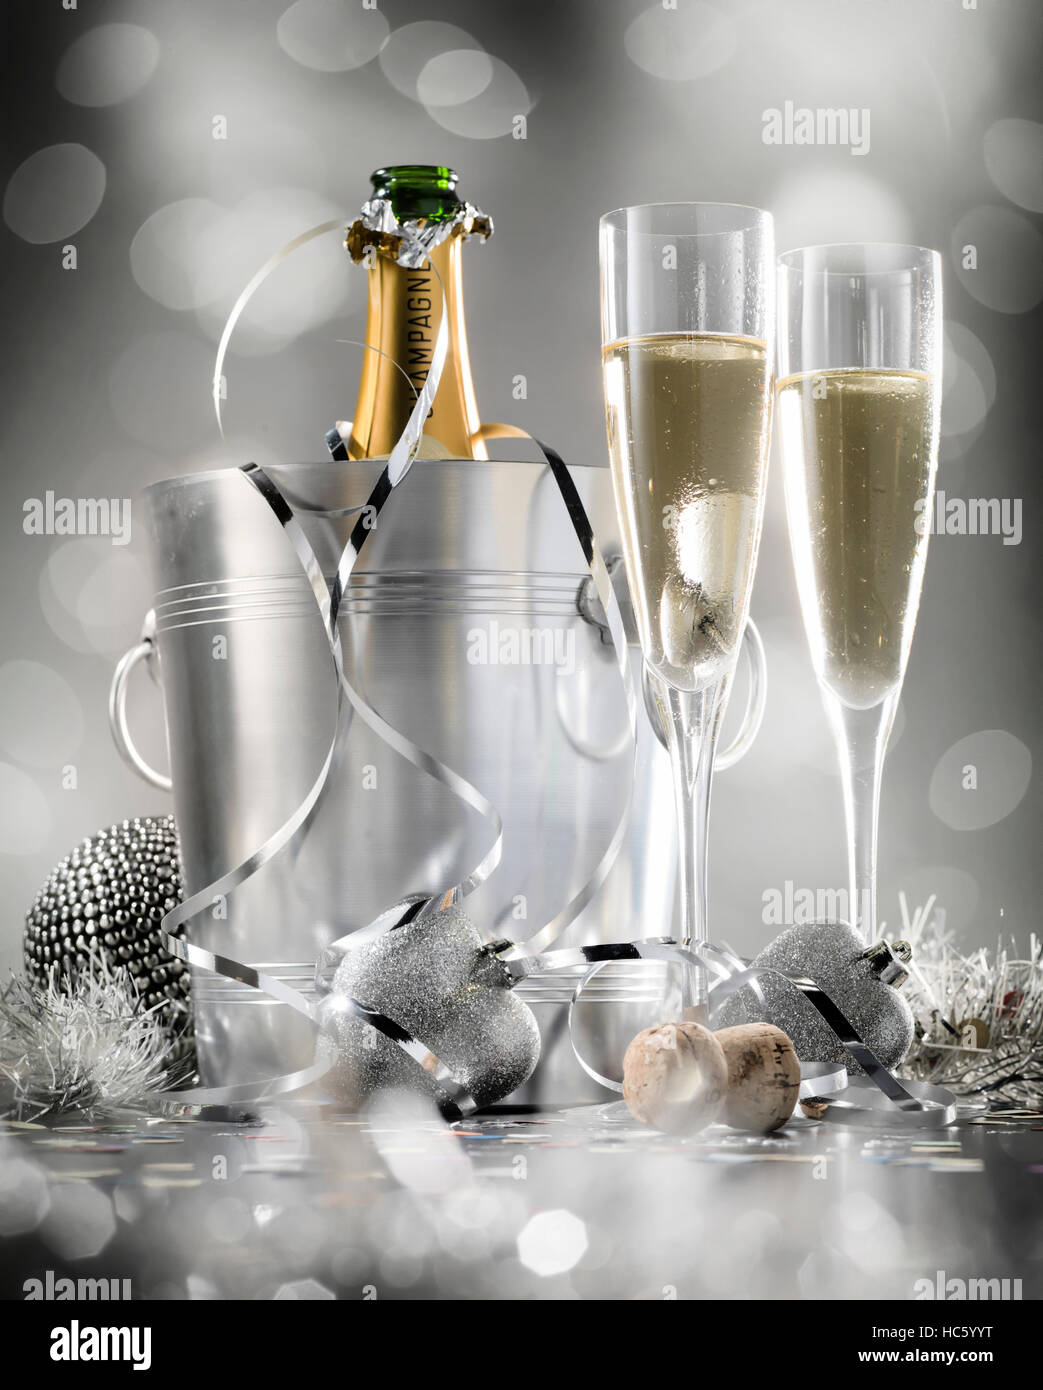 Pair glass of champagne with bottle in metal container. New Year celebration theme with blur spots of bubbles - Stock Image